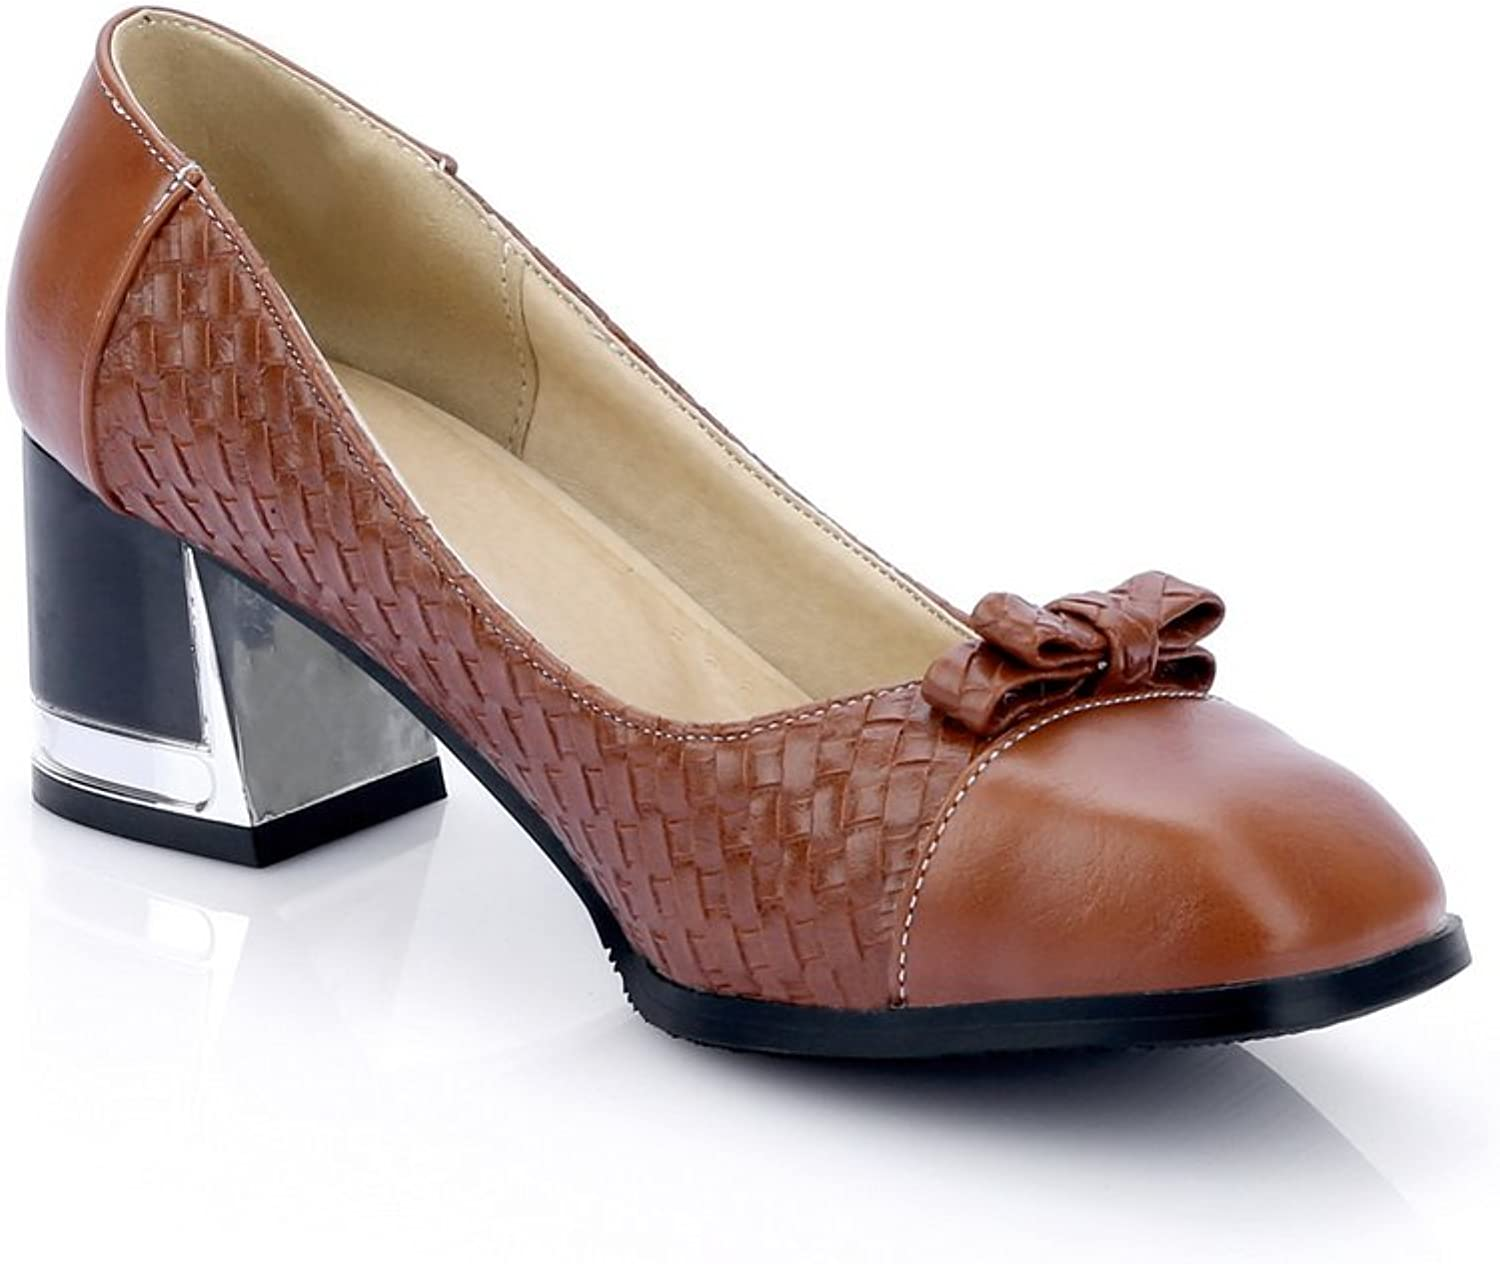 1TO9 Womens Chunky Heels Low-Cut Uppers Square-Toe Leather Pumps shoes MMS04412